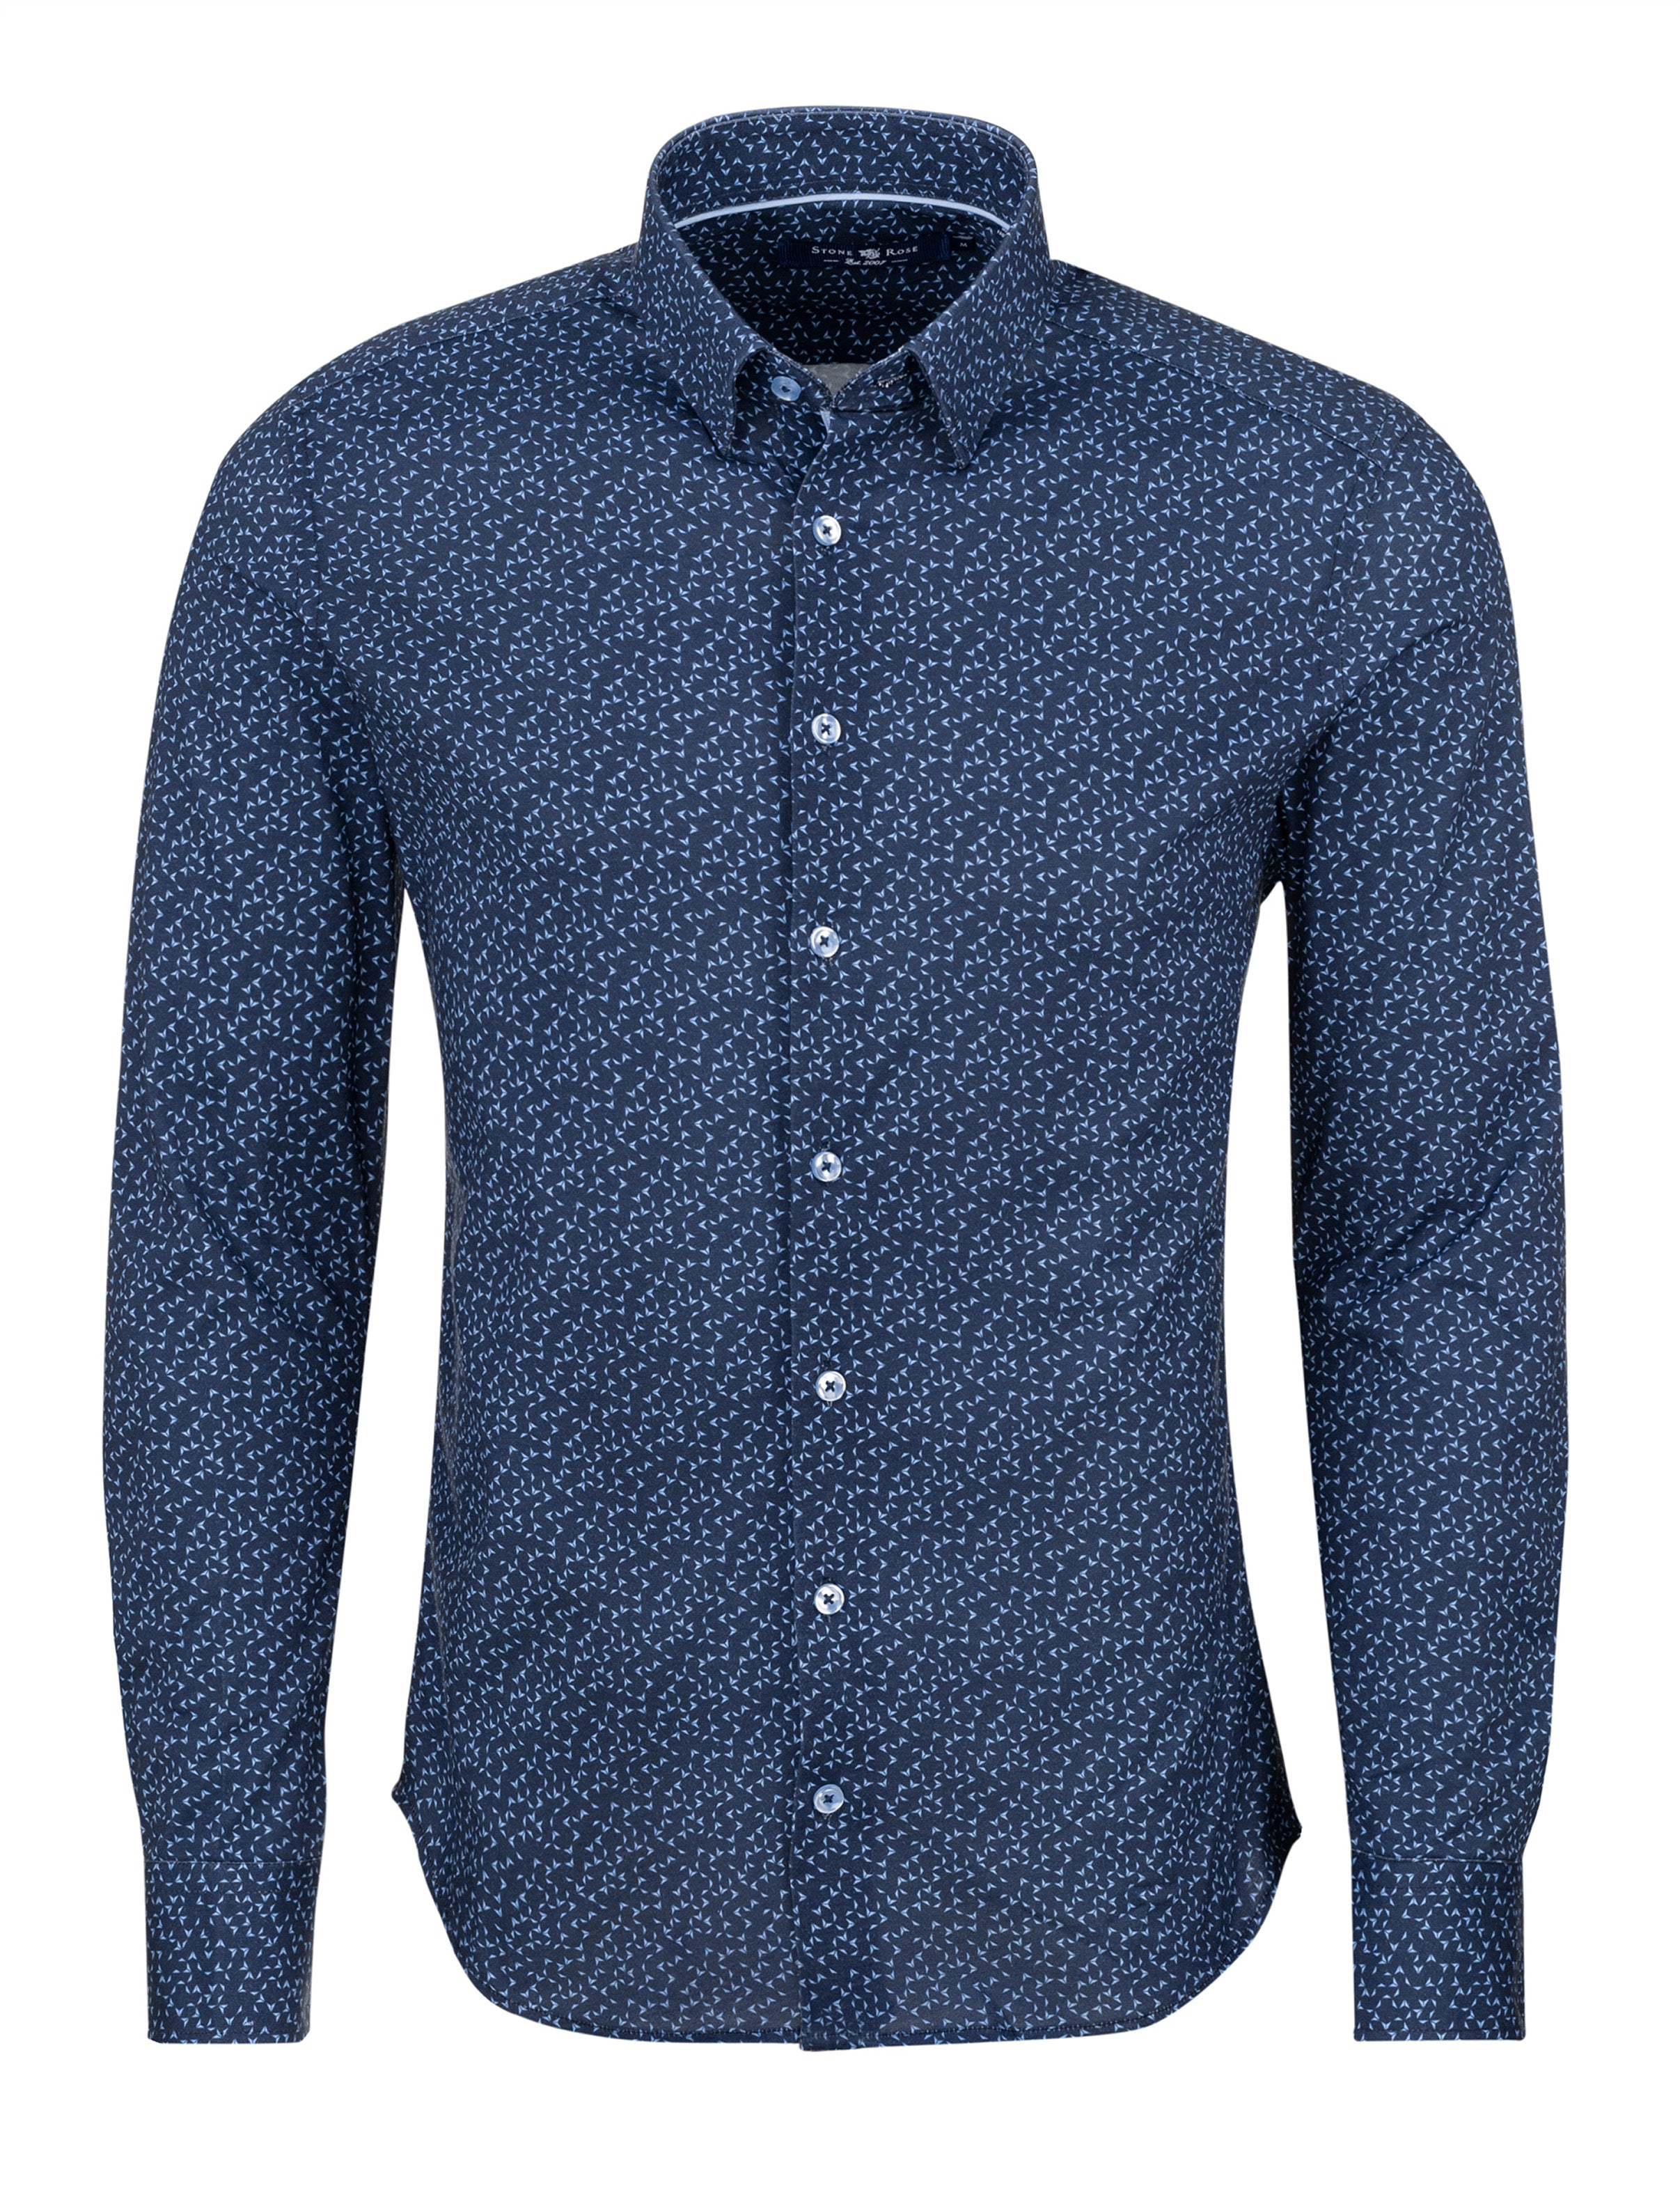 Navy Novelty Knit Long Sleeve Shirt